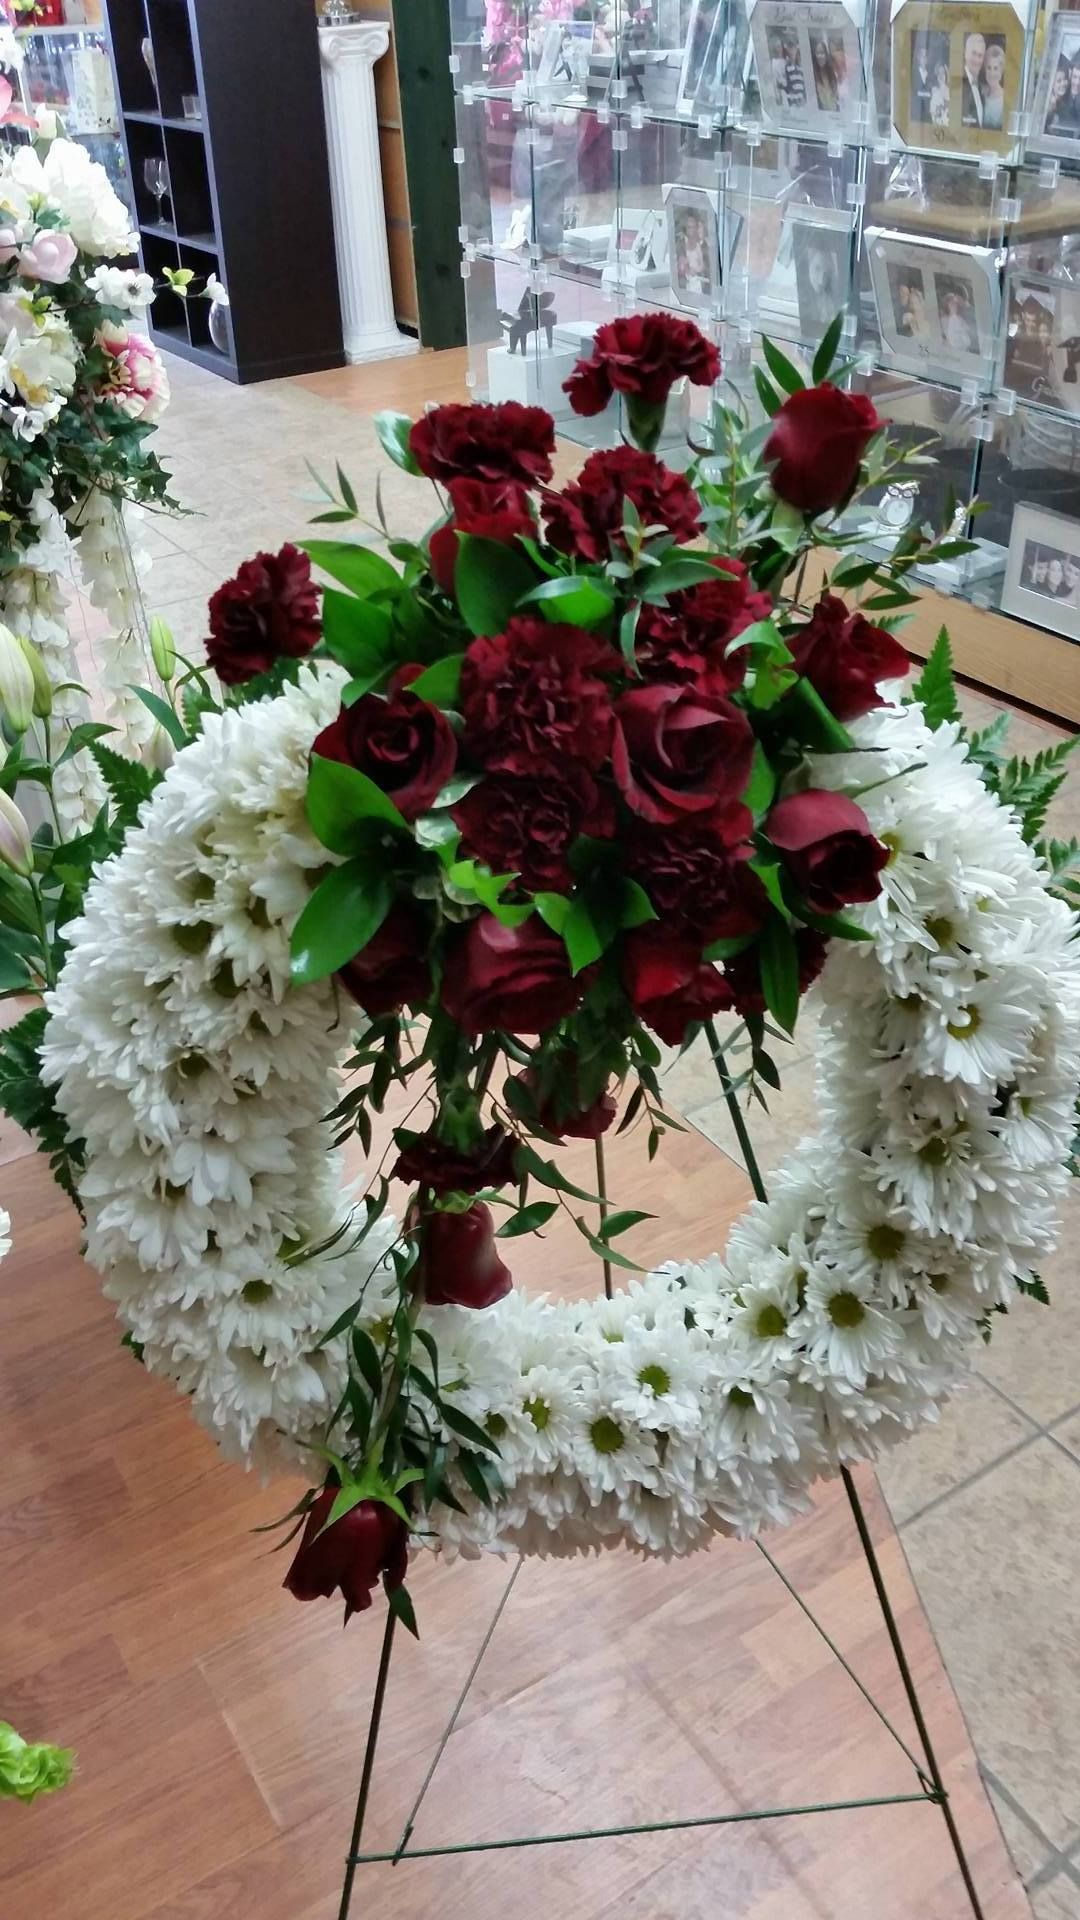 We offer beautiful selections of funeral and sympathy